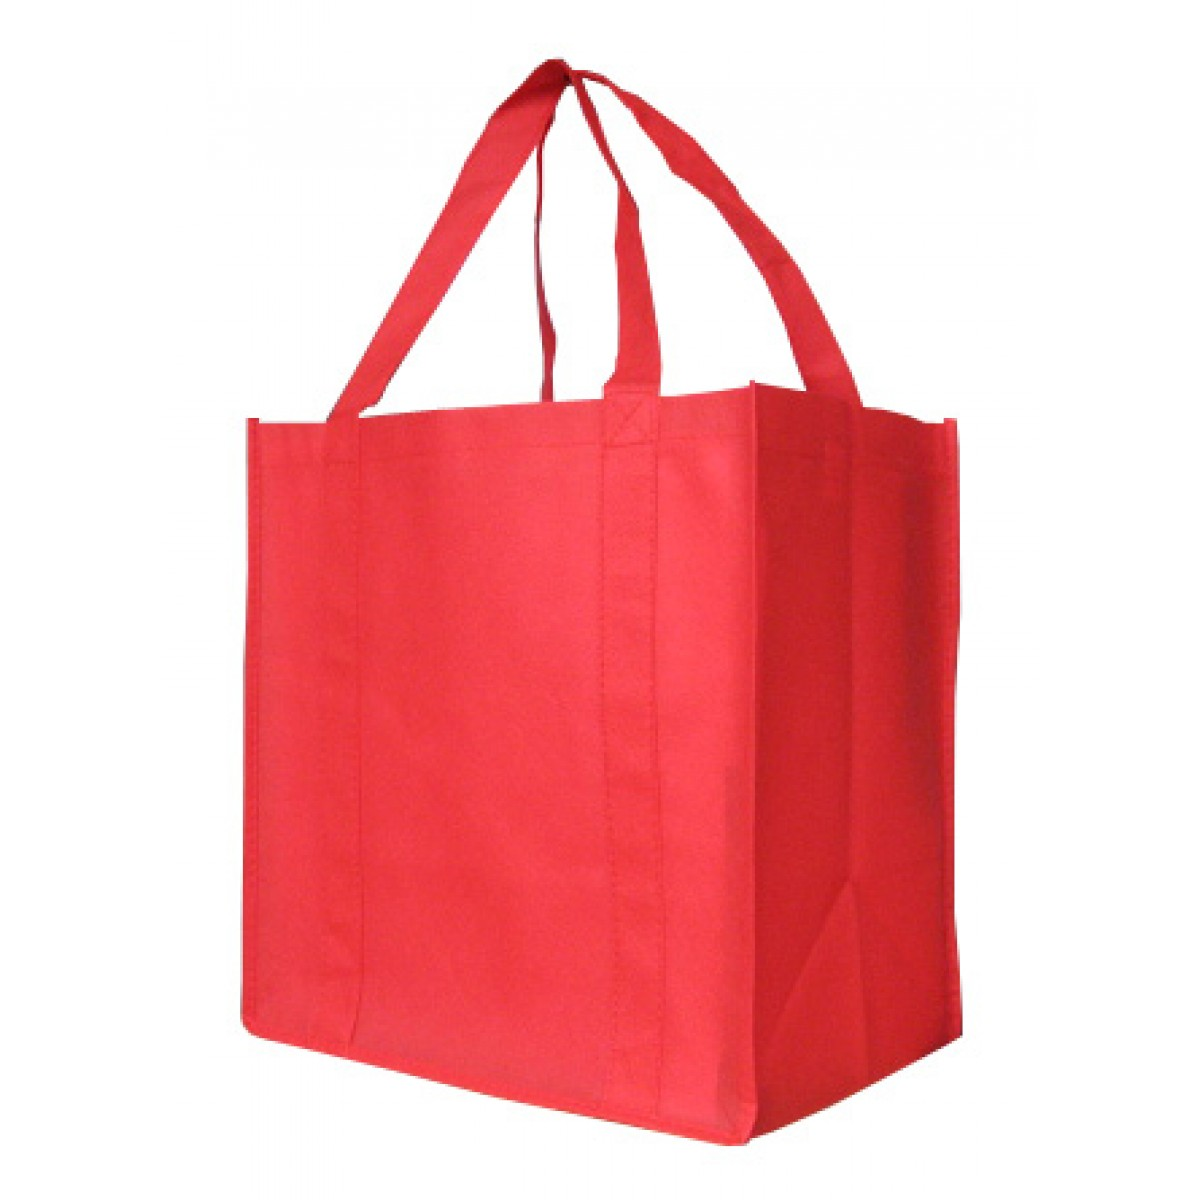 Buy Nonwoven Fabric Raw Material Of Shopping Bag,Best Nonwoven ...